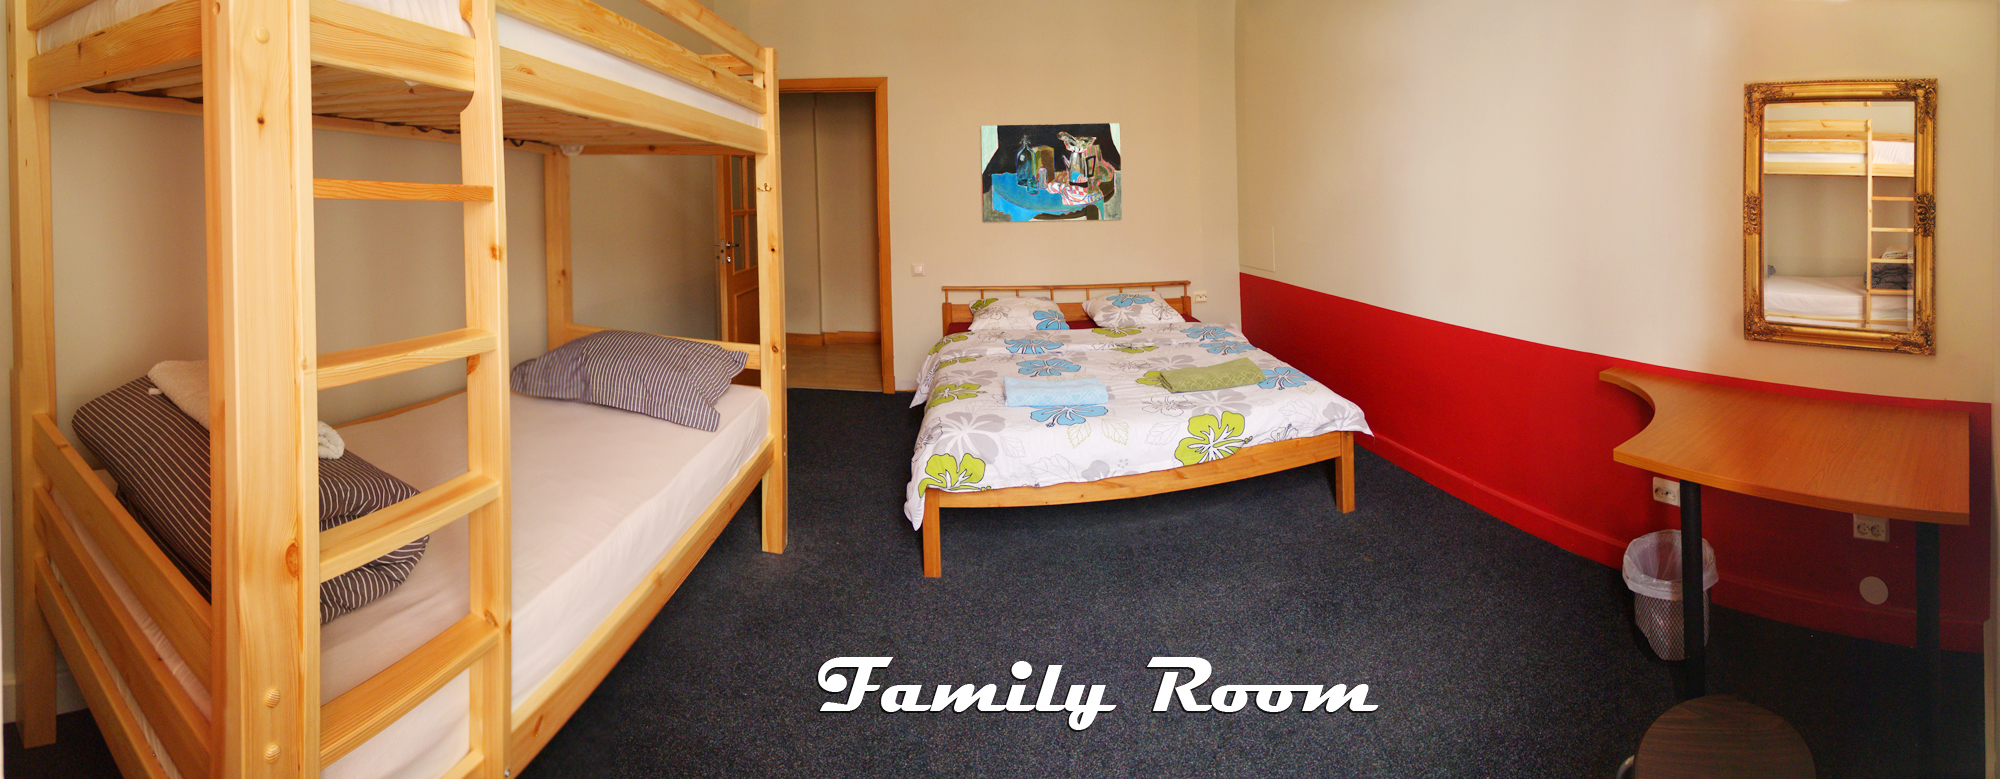 Hostel Private Room Meaning